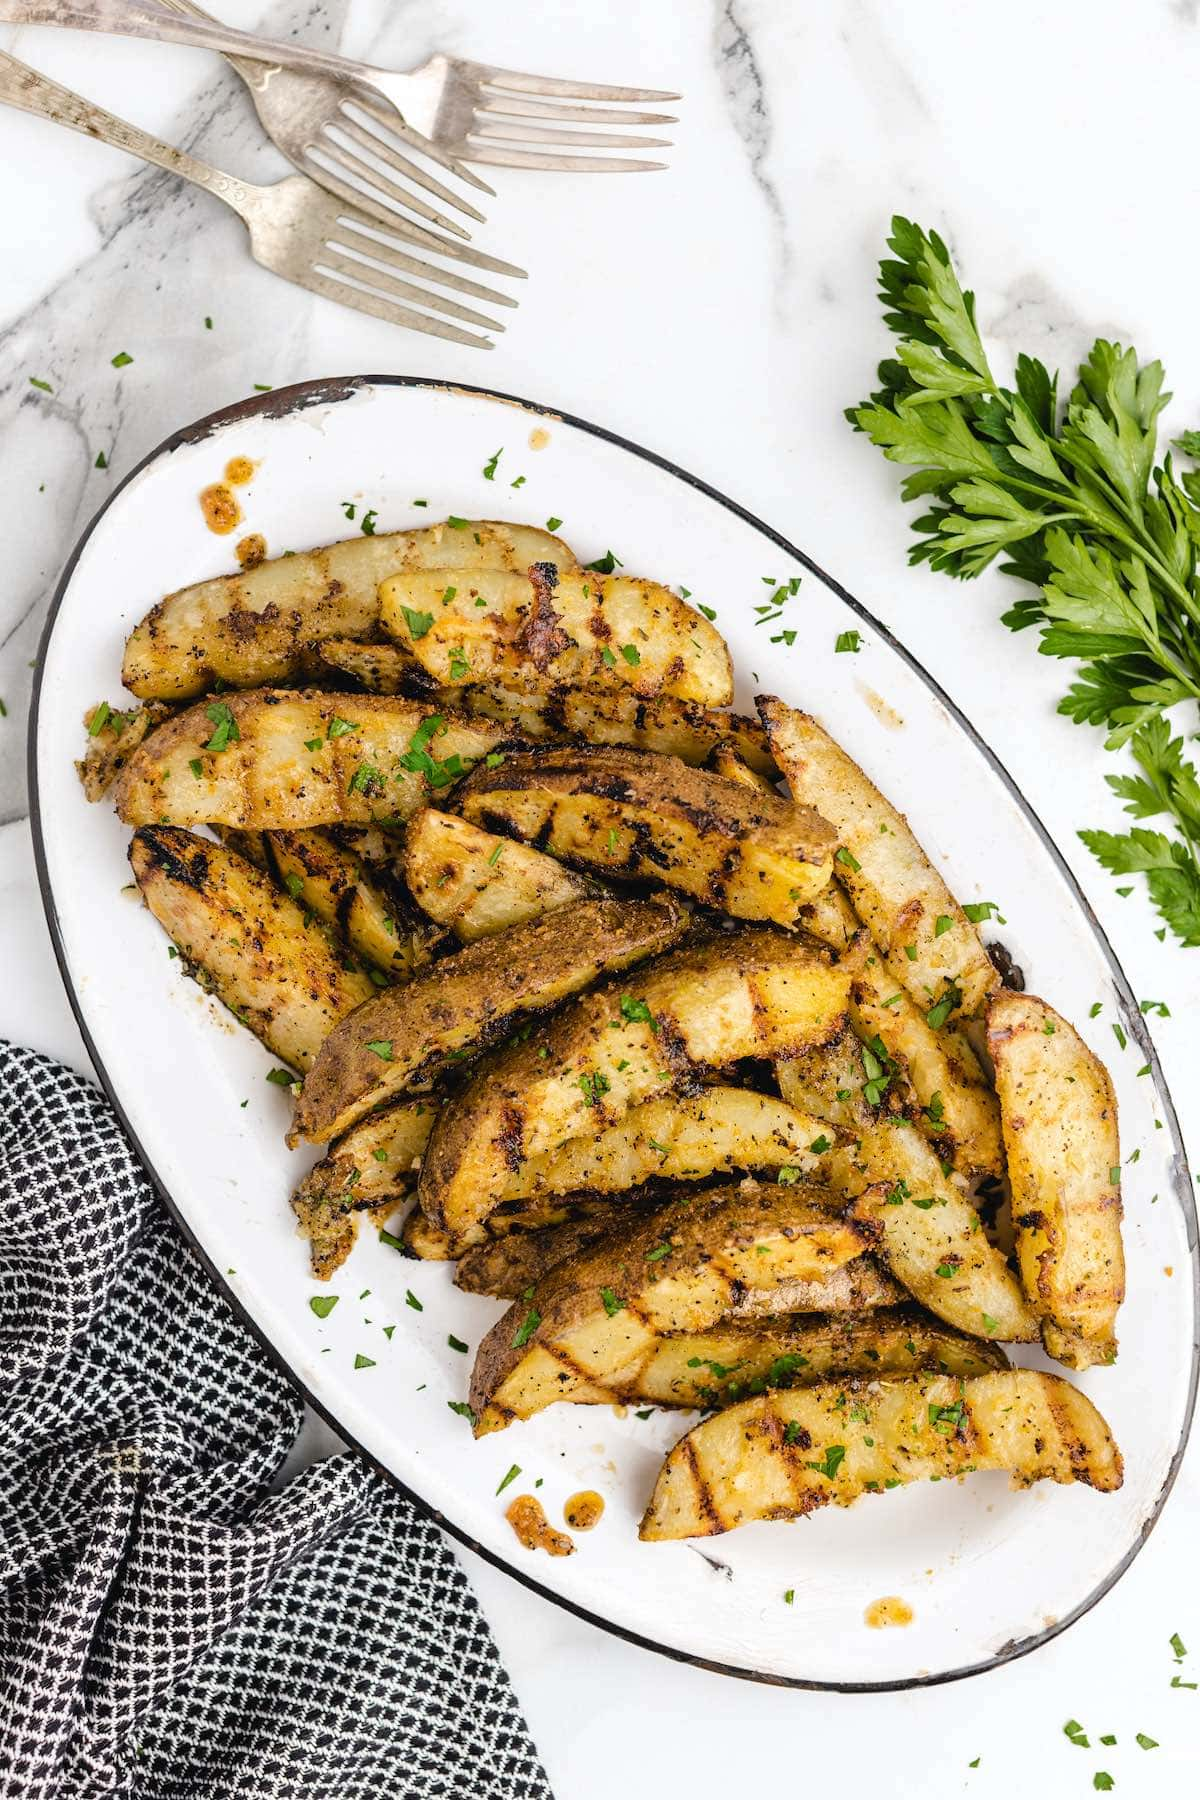 grilled potatoes on a plate